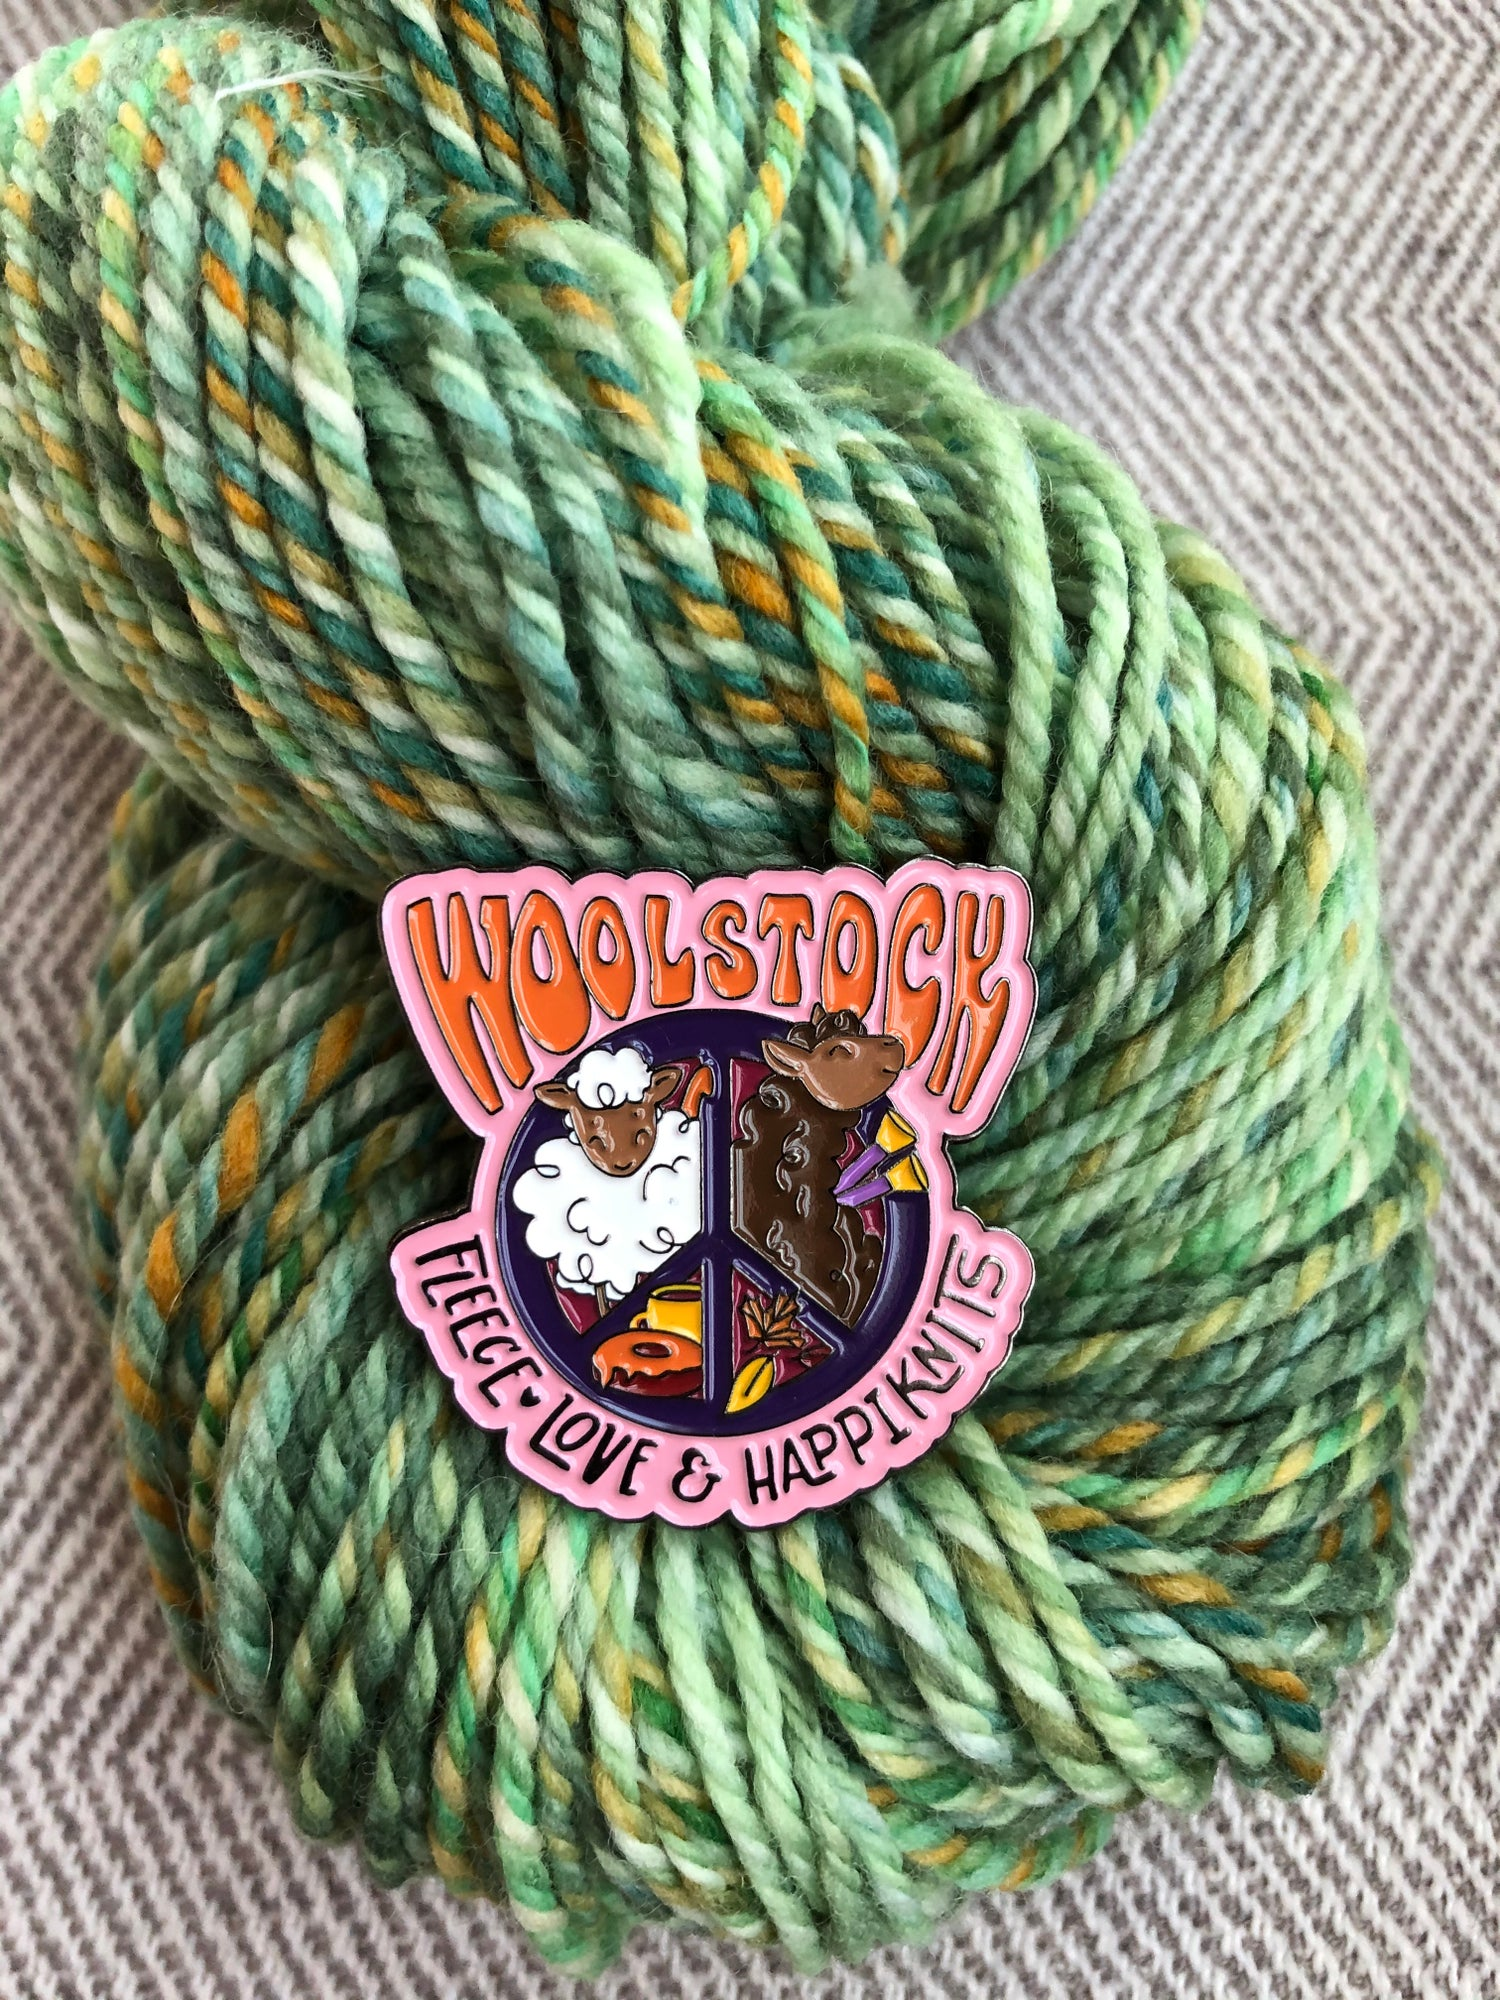 Image of Woolstock: Love Fleece and Happiknits